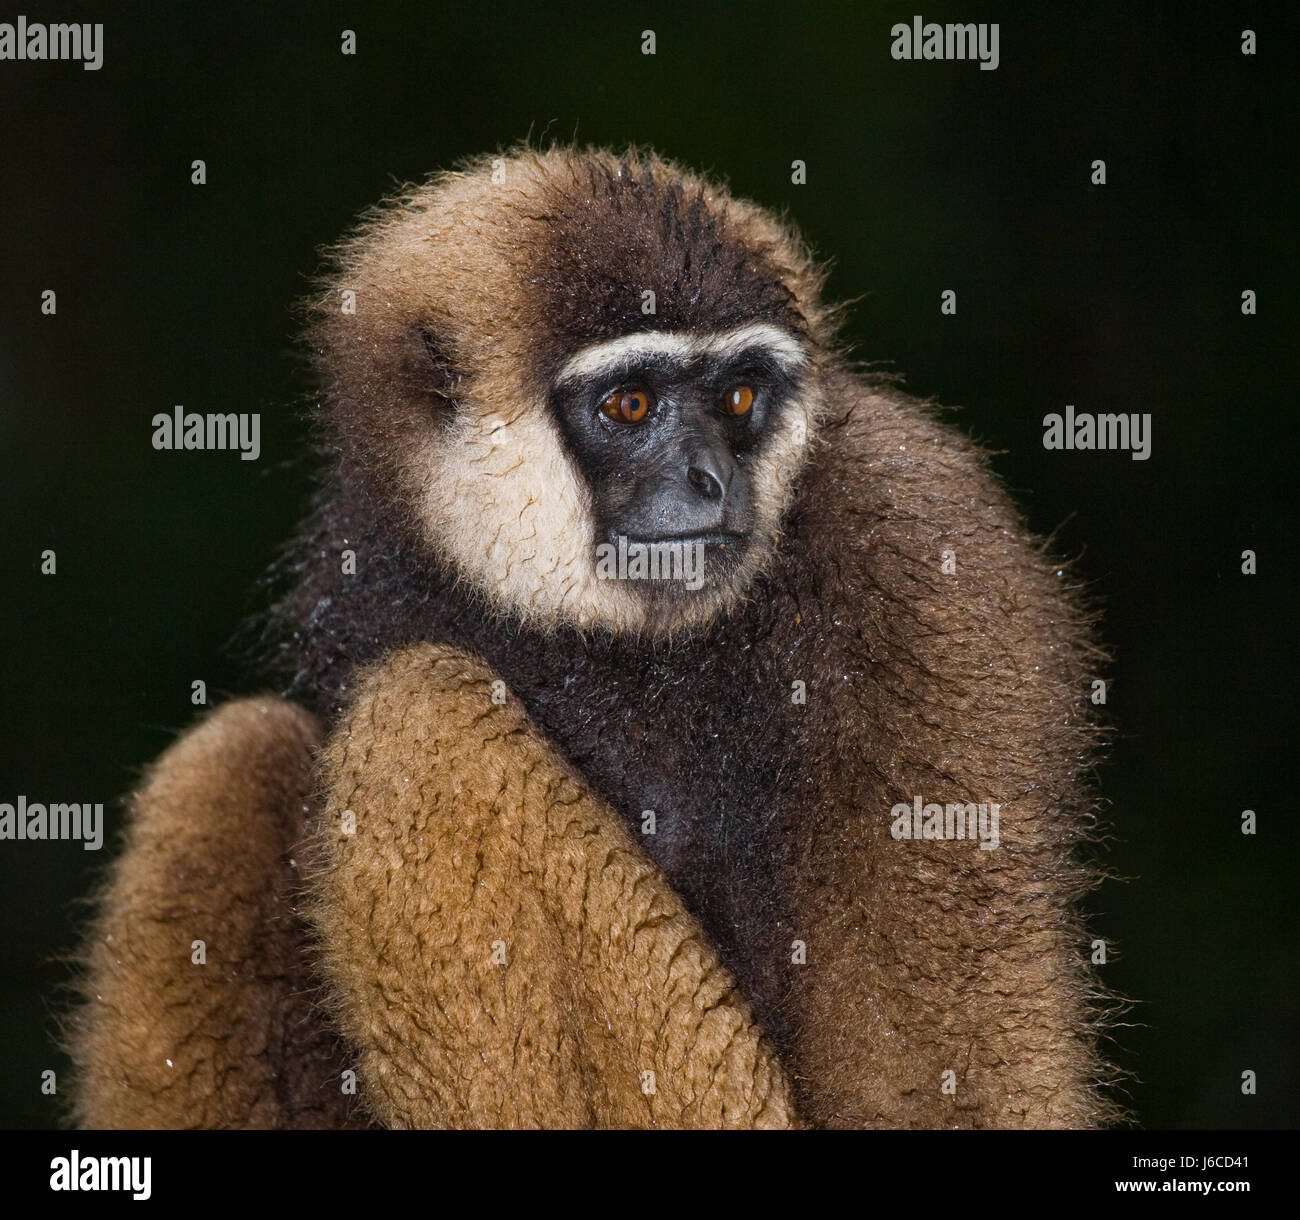 Gibbon sitting on the tree. Indonesia. The island of Kalimantan (Borneo). An excellent illustration. - Stock Image